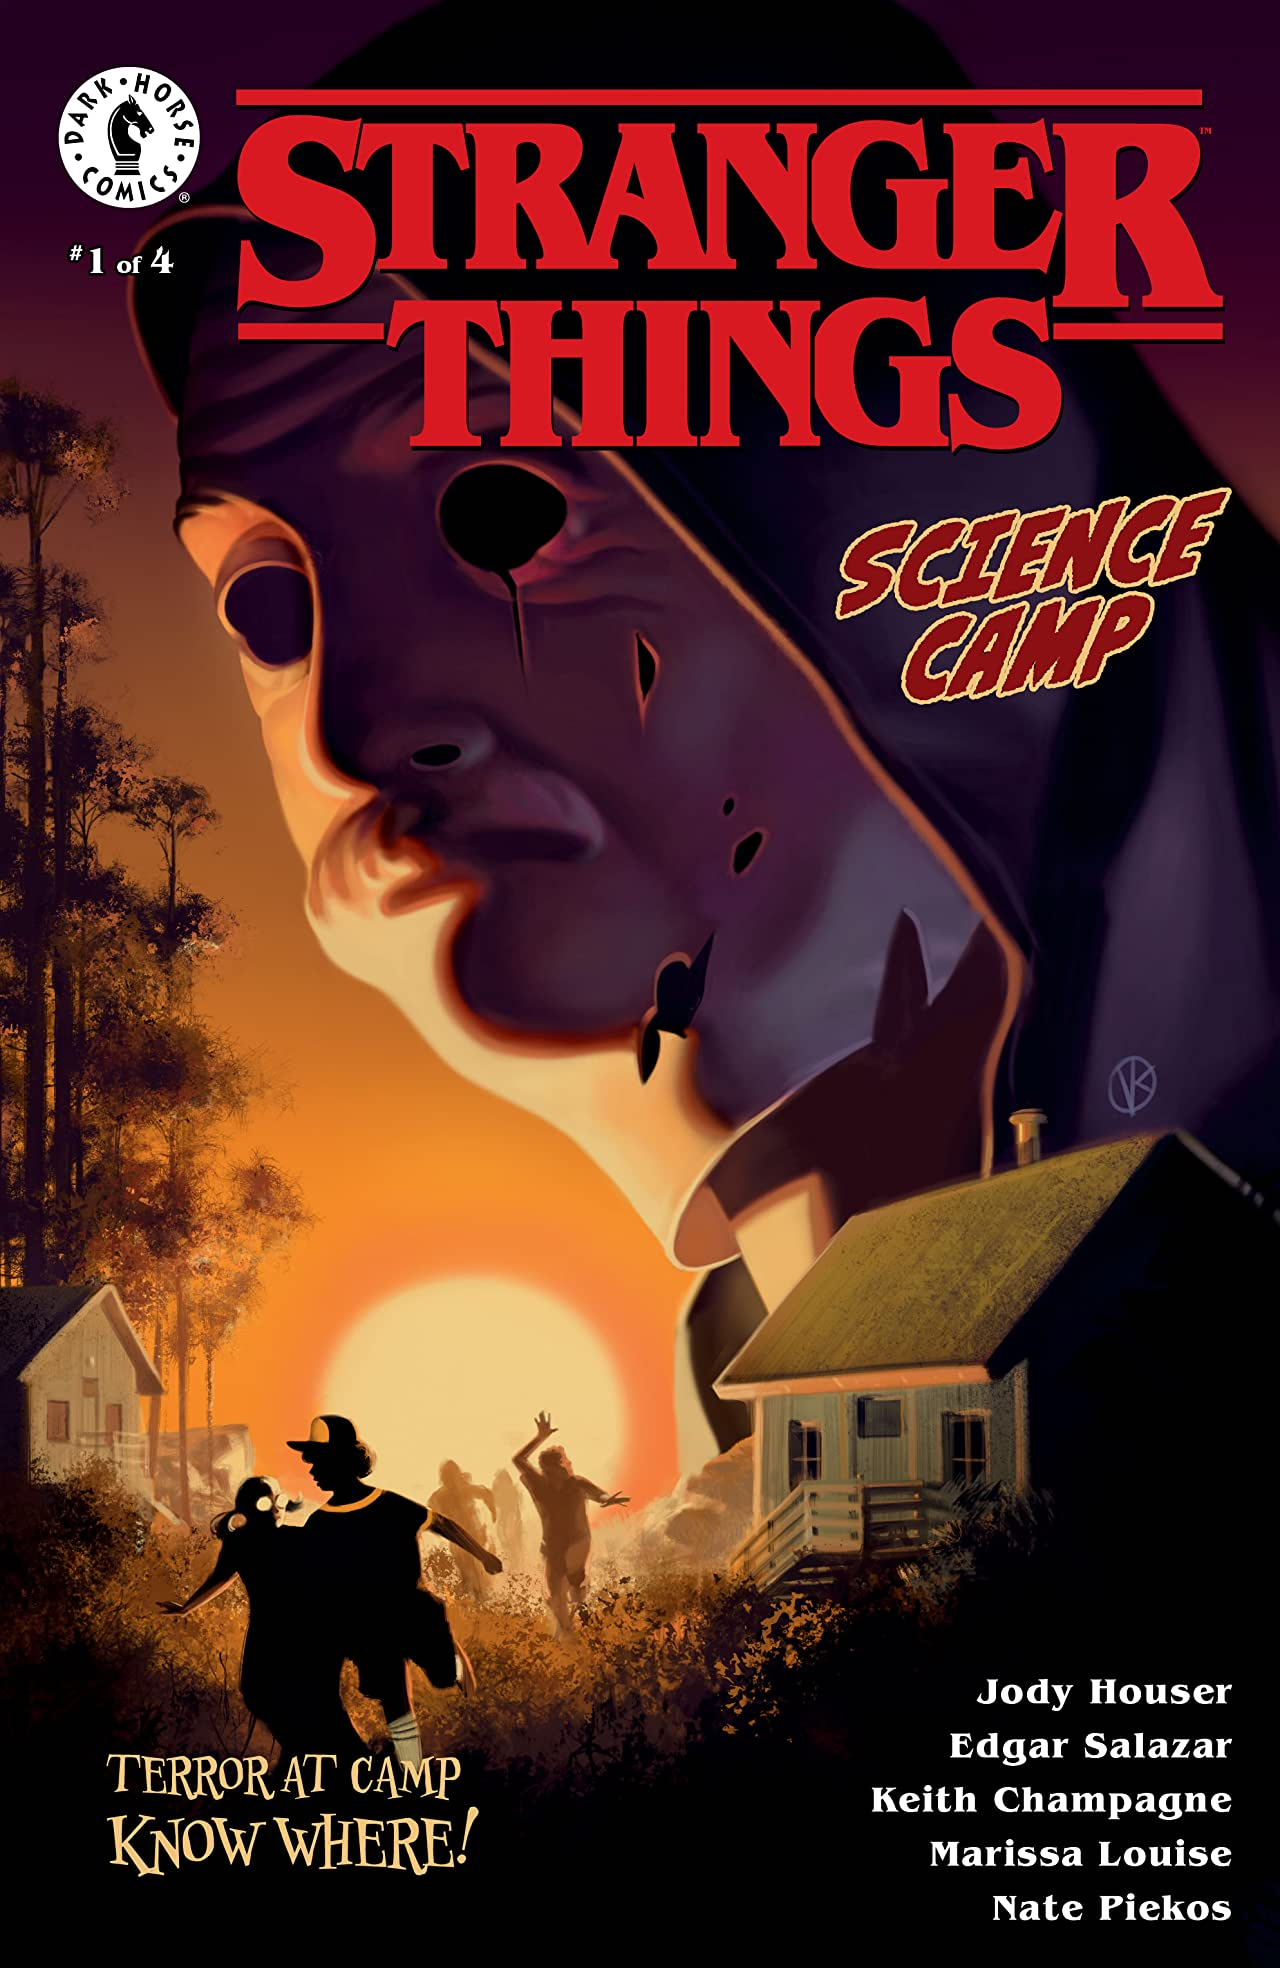 Stranger Things: Science Camp No.1